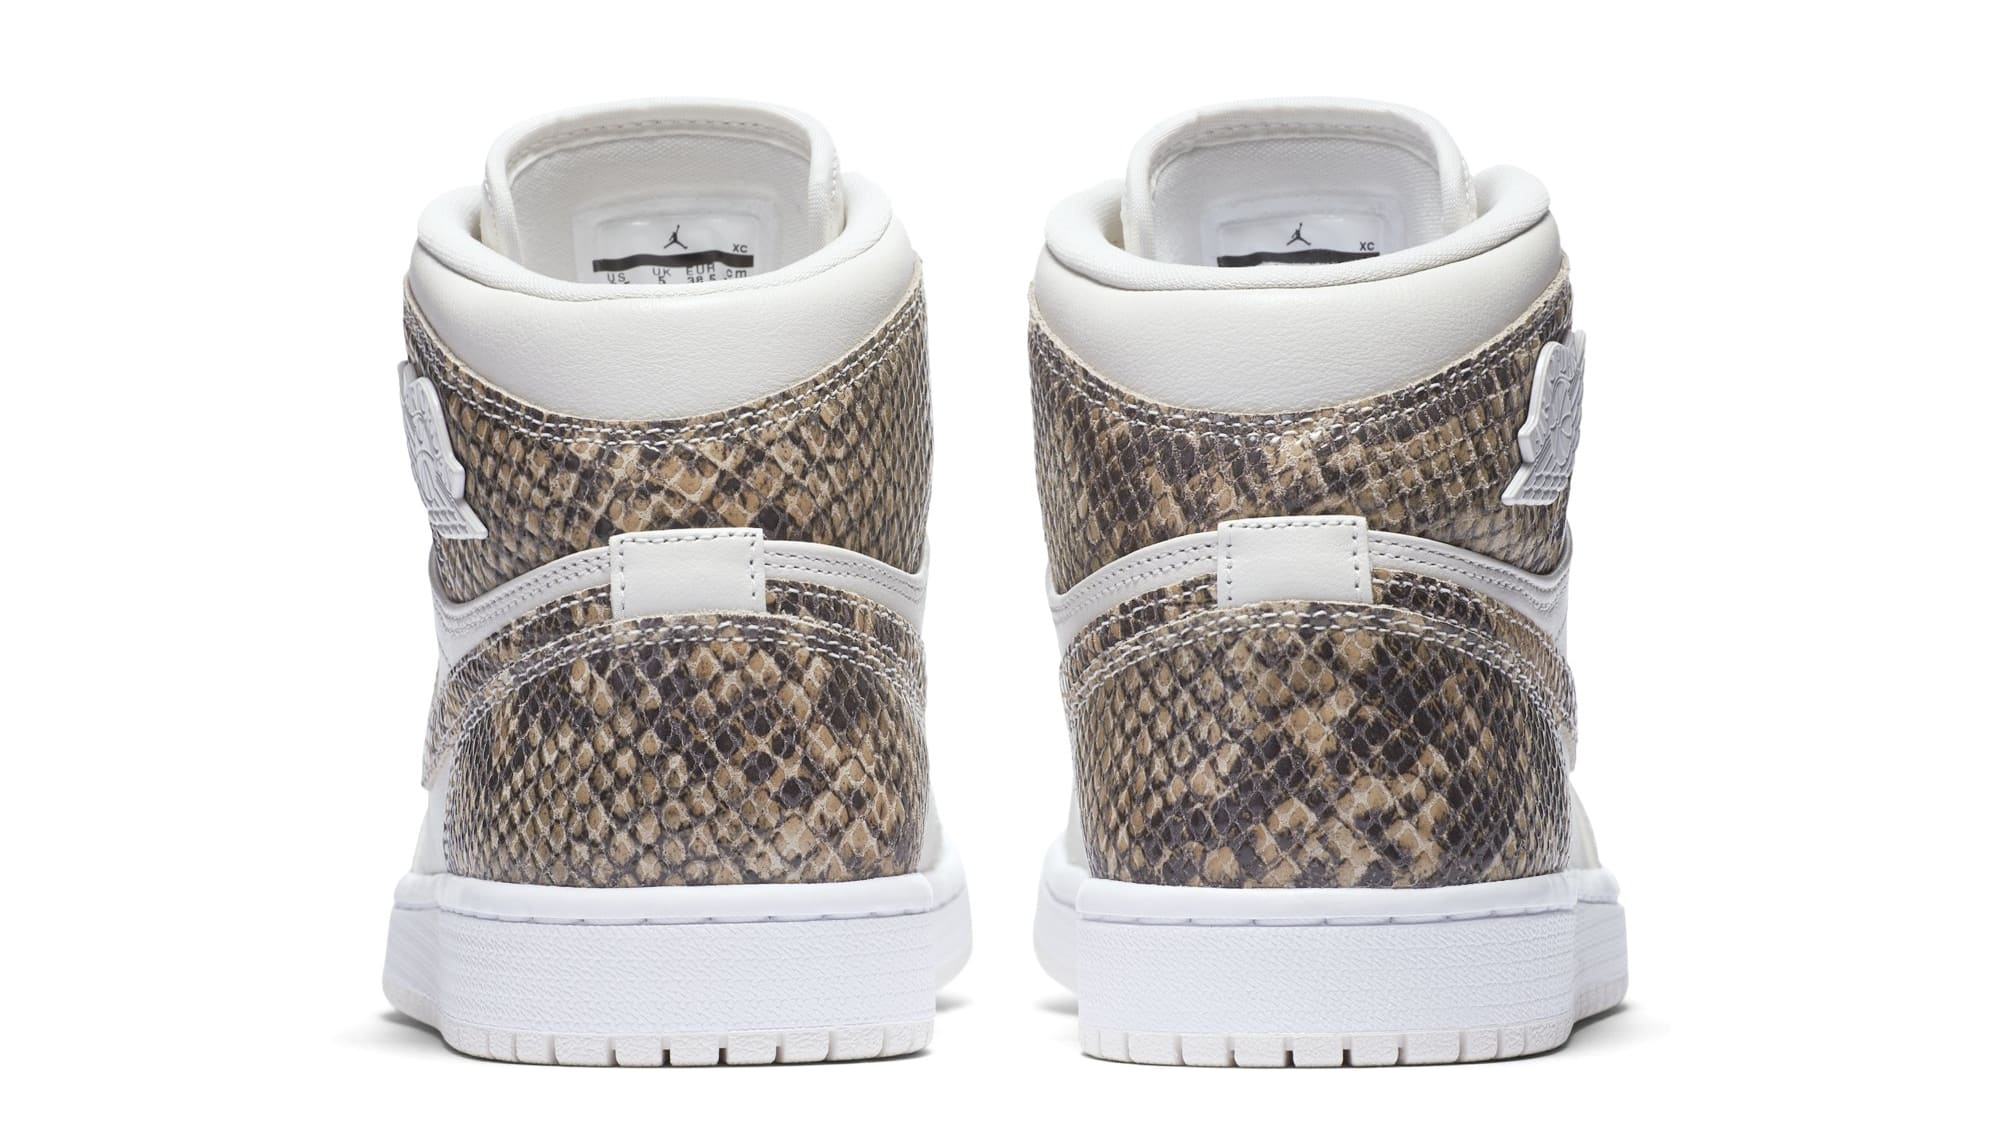 Air Jordan 1 Retro High Premium Women's Snake 'Phantom/White' AH7389-004 (Heel)